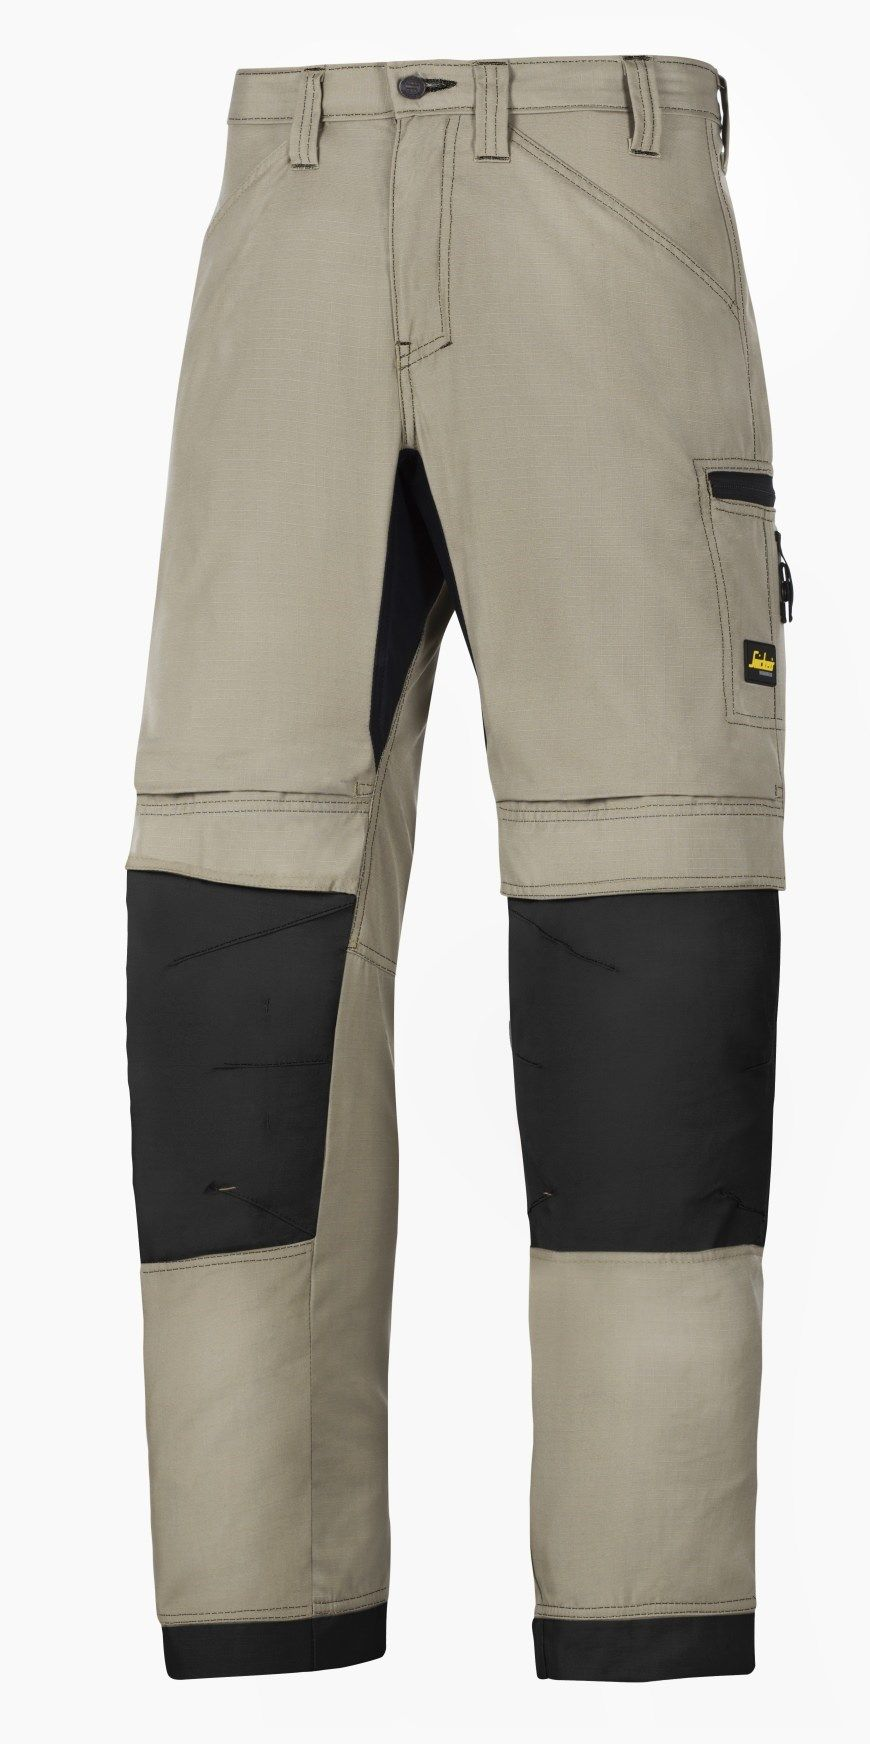 Stay cool, dry and ventilated in these superlight work